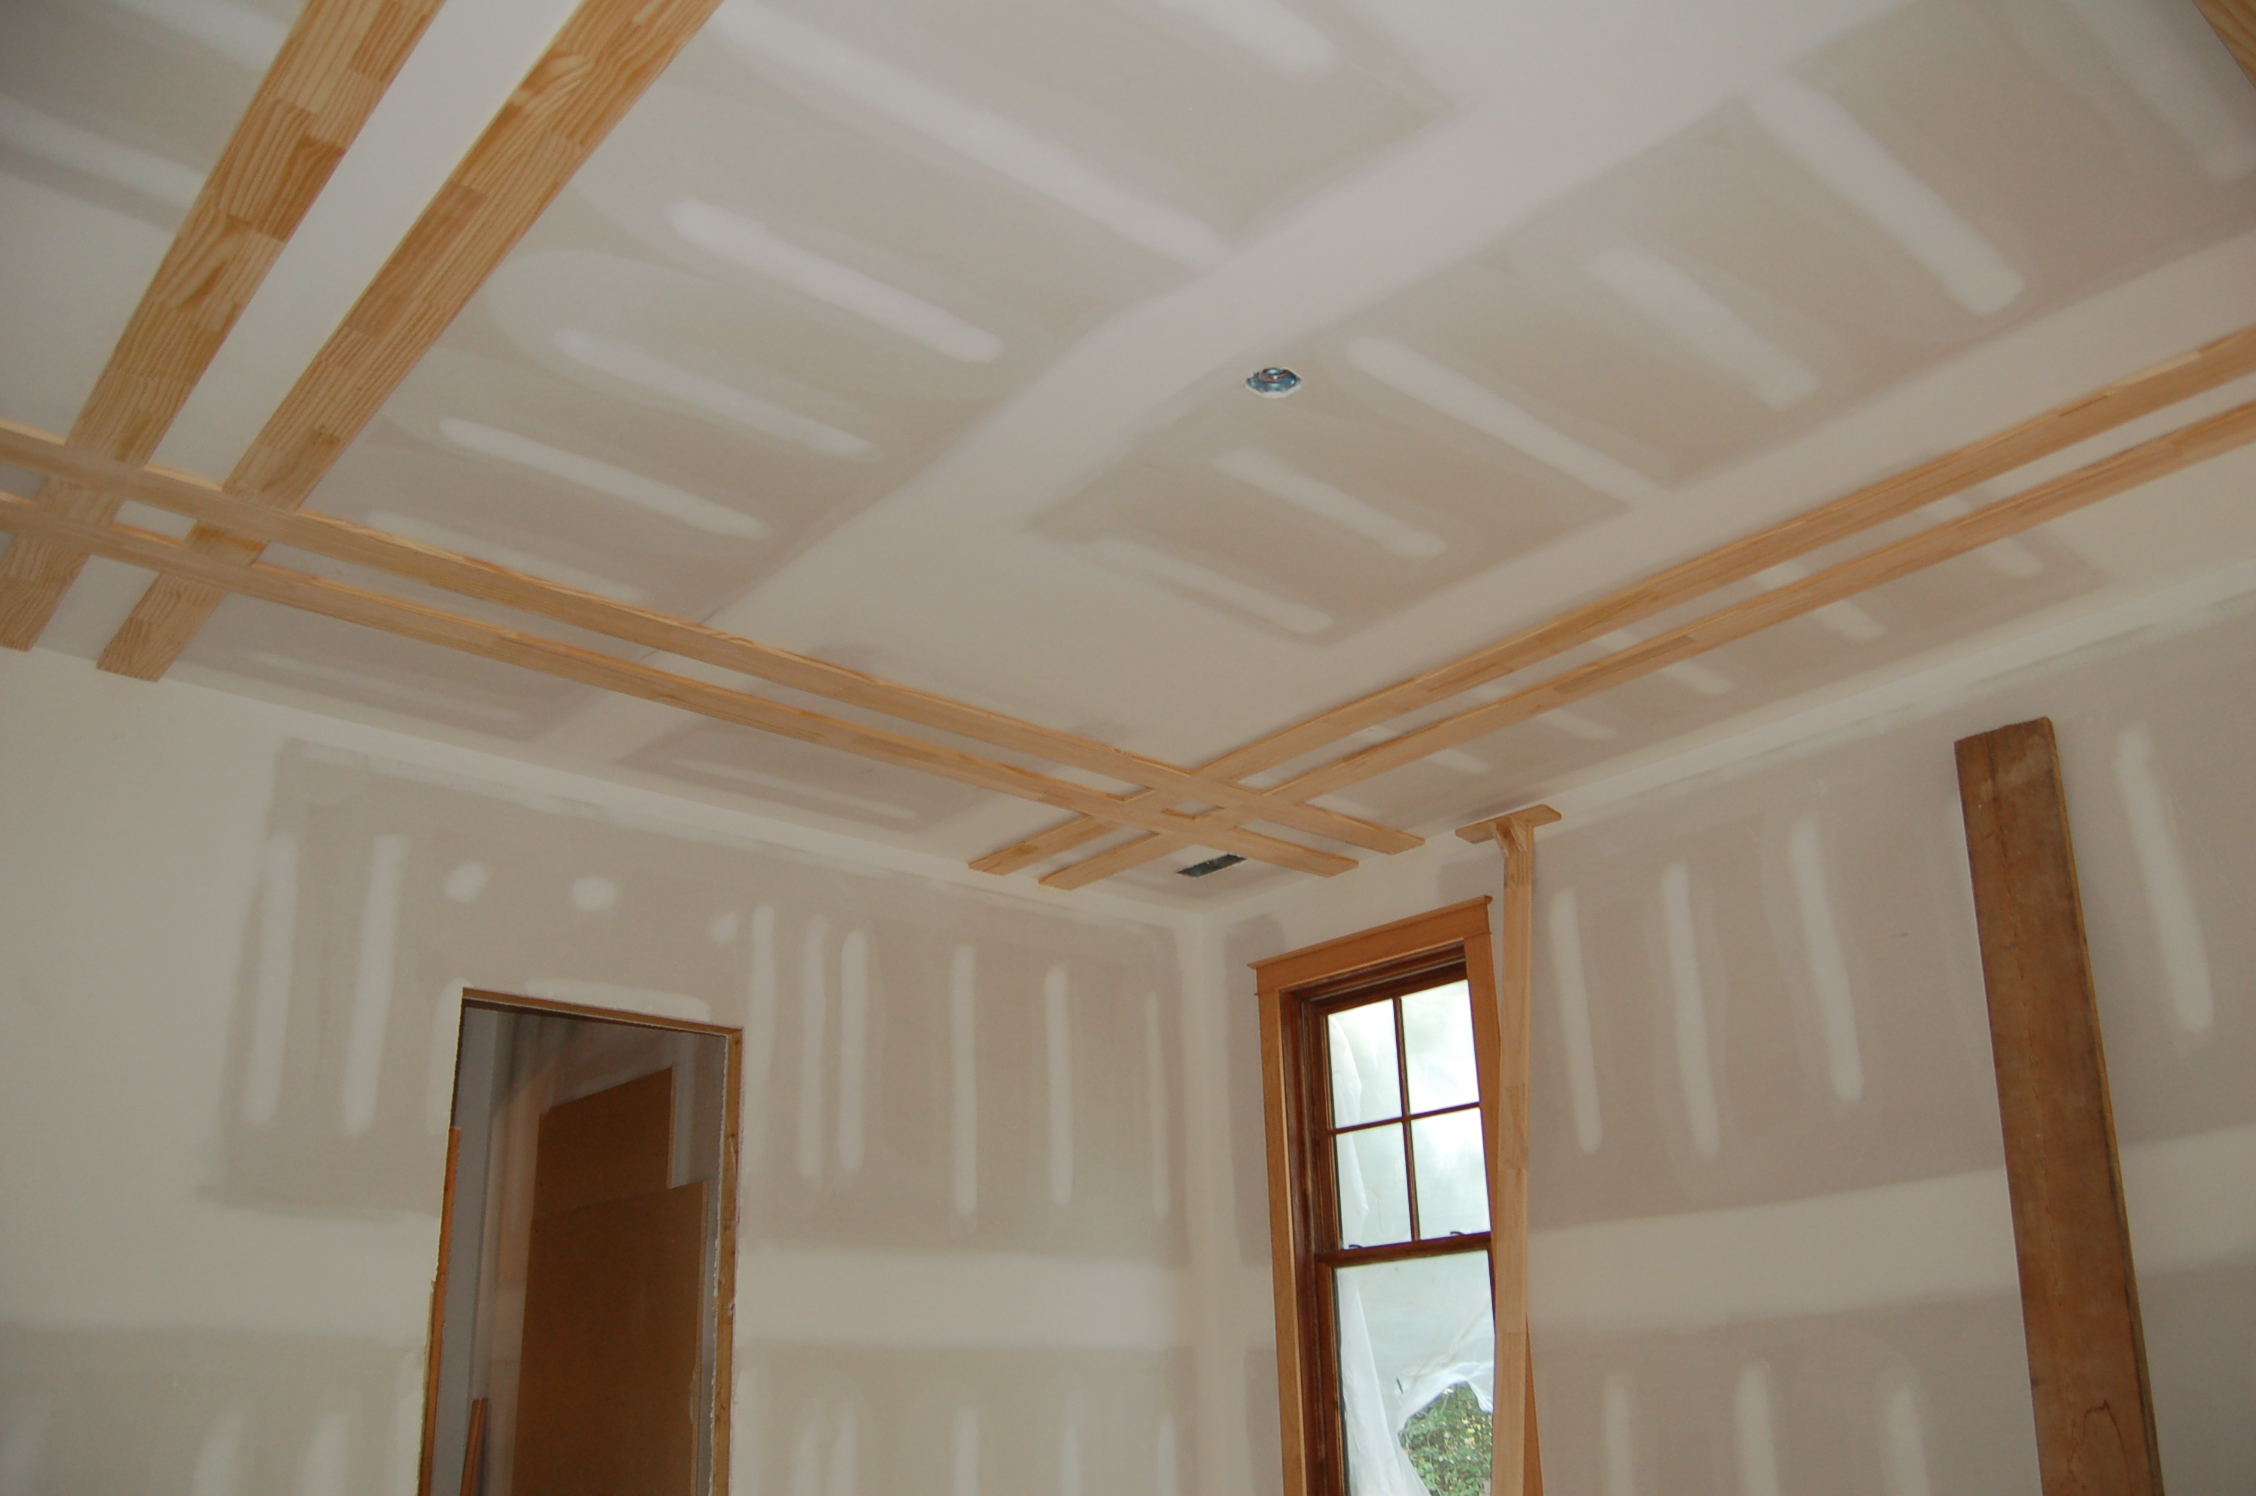 Bedroom Ceiling Moulding Tile And Trim Modern Craftsman Style Home